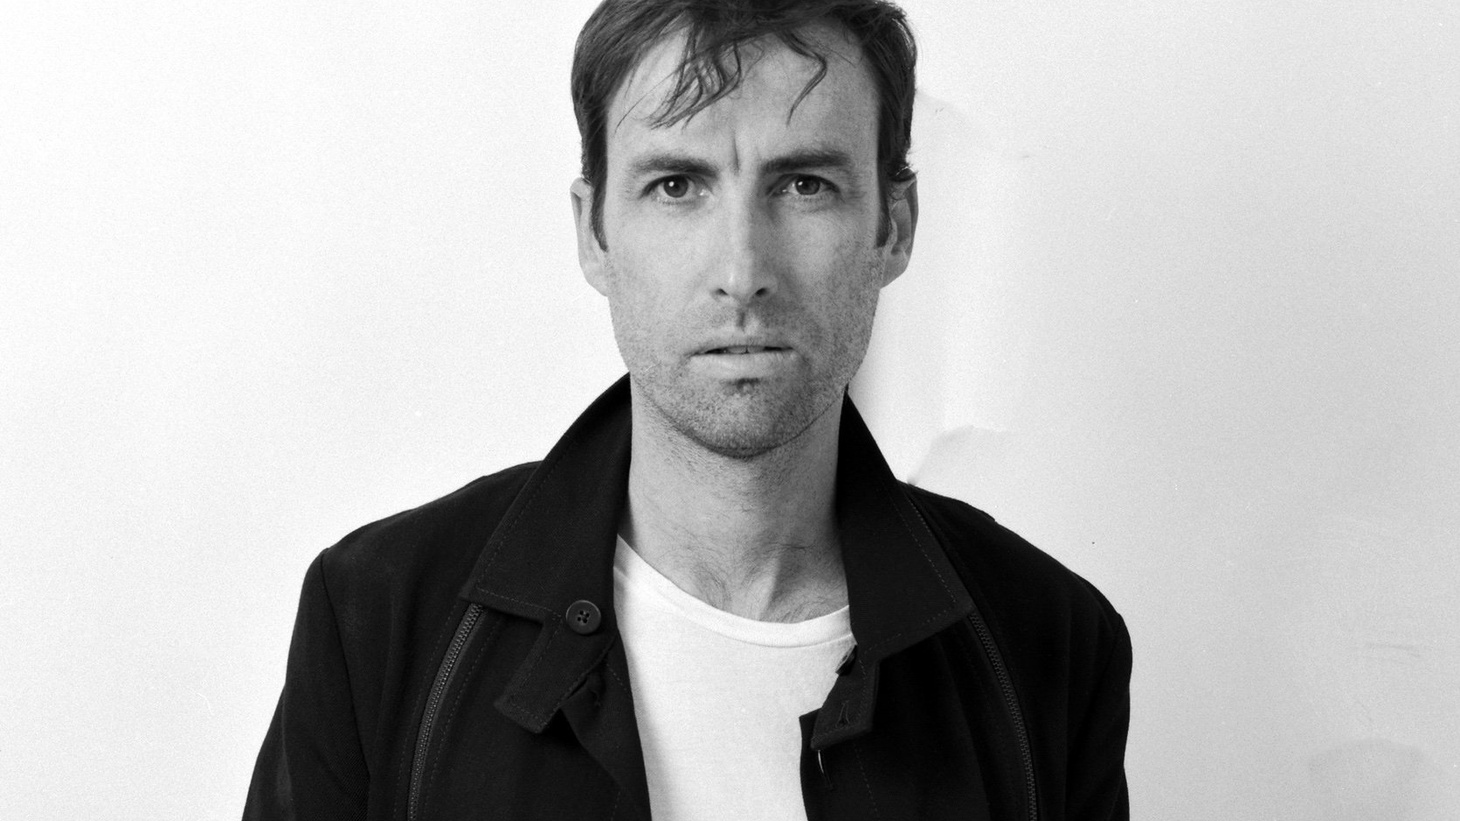 Are You Serious is Andrew Bird's most personal album to date.